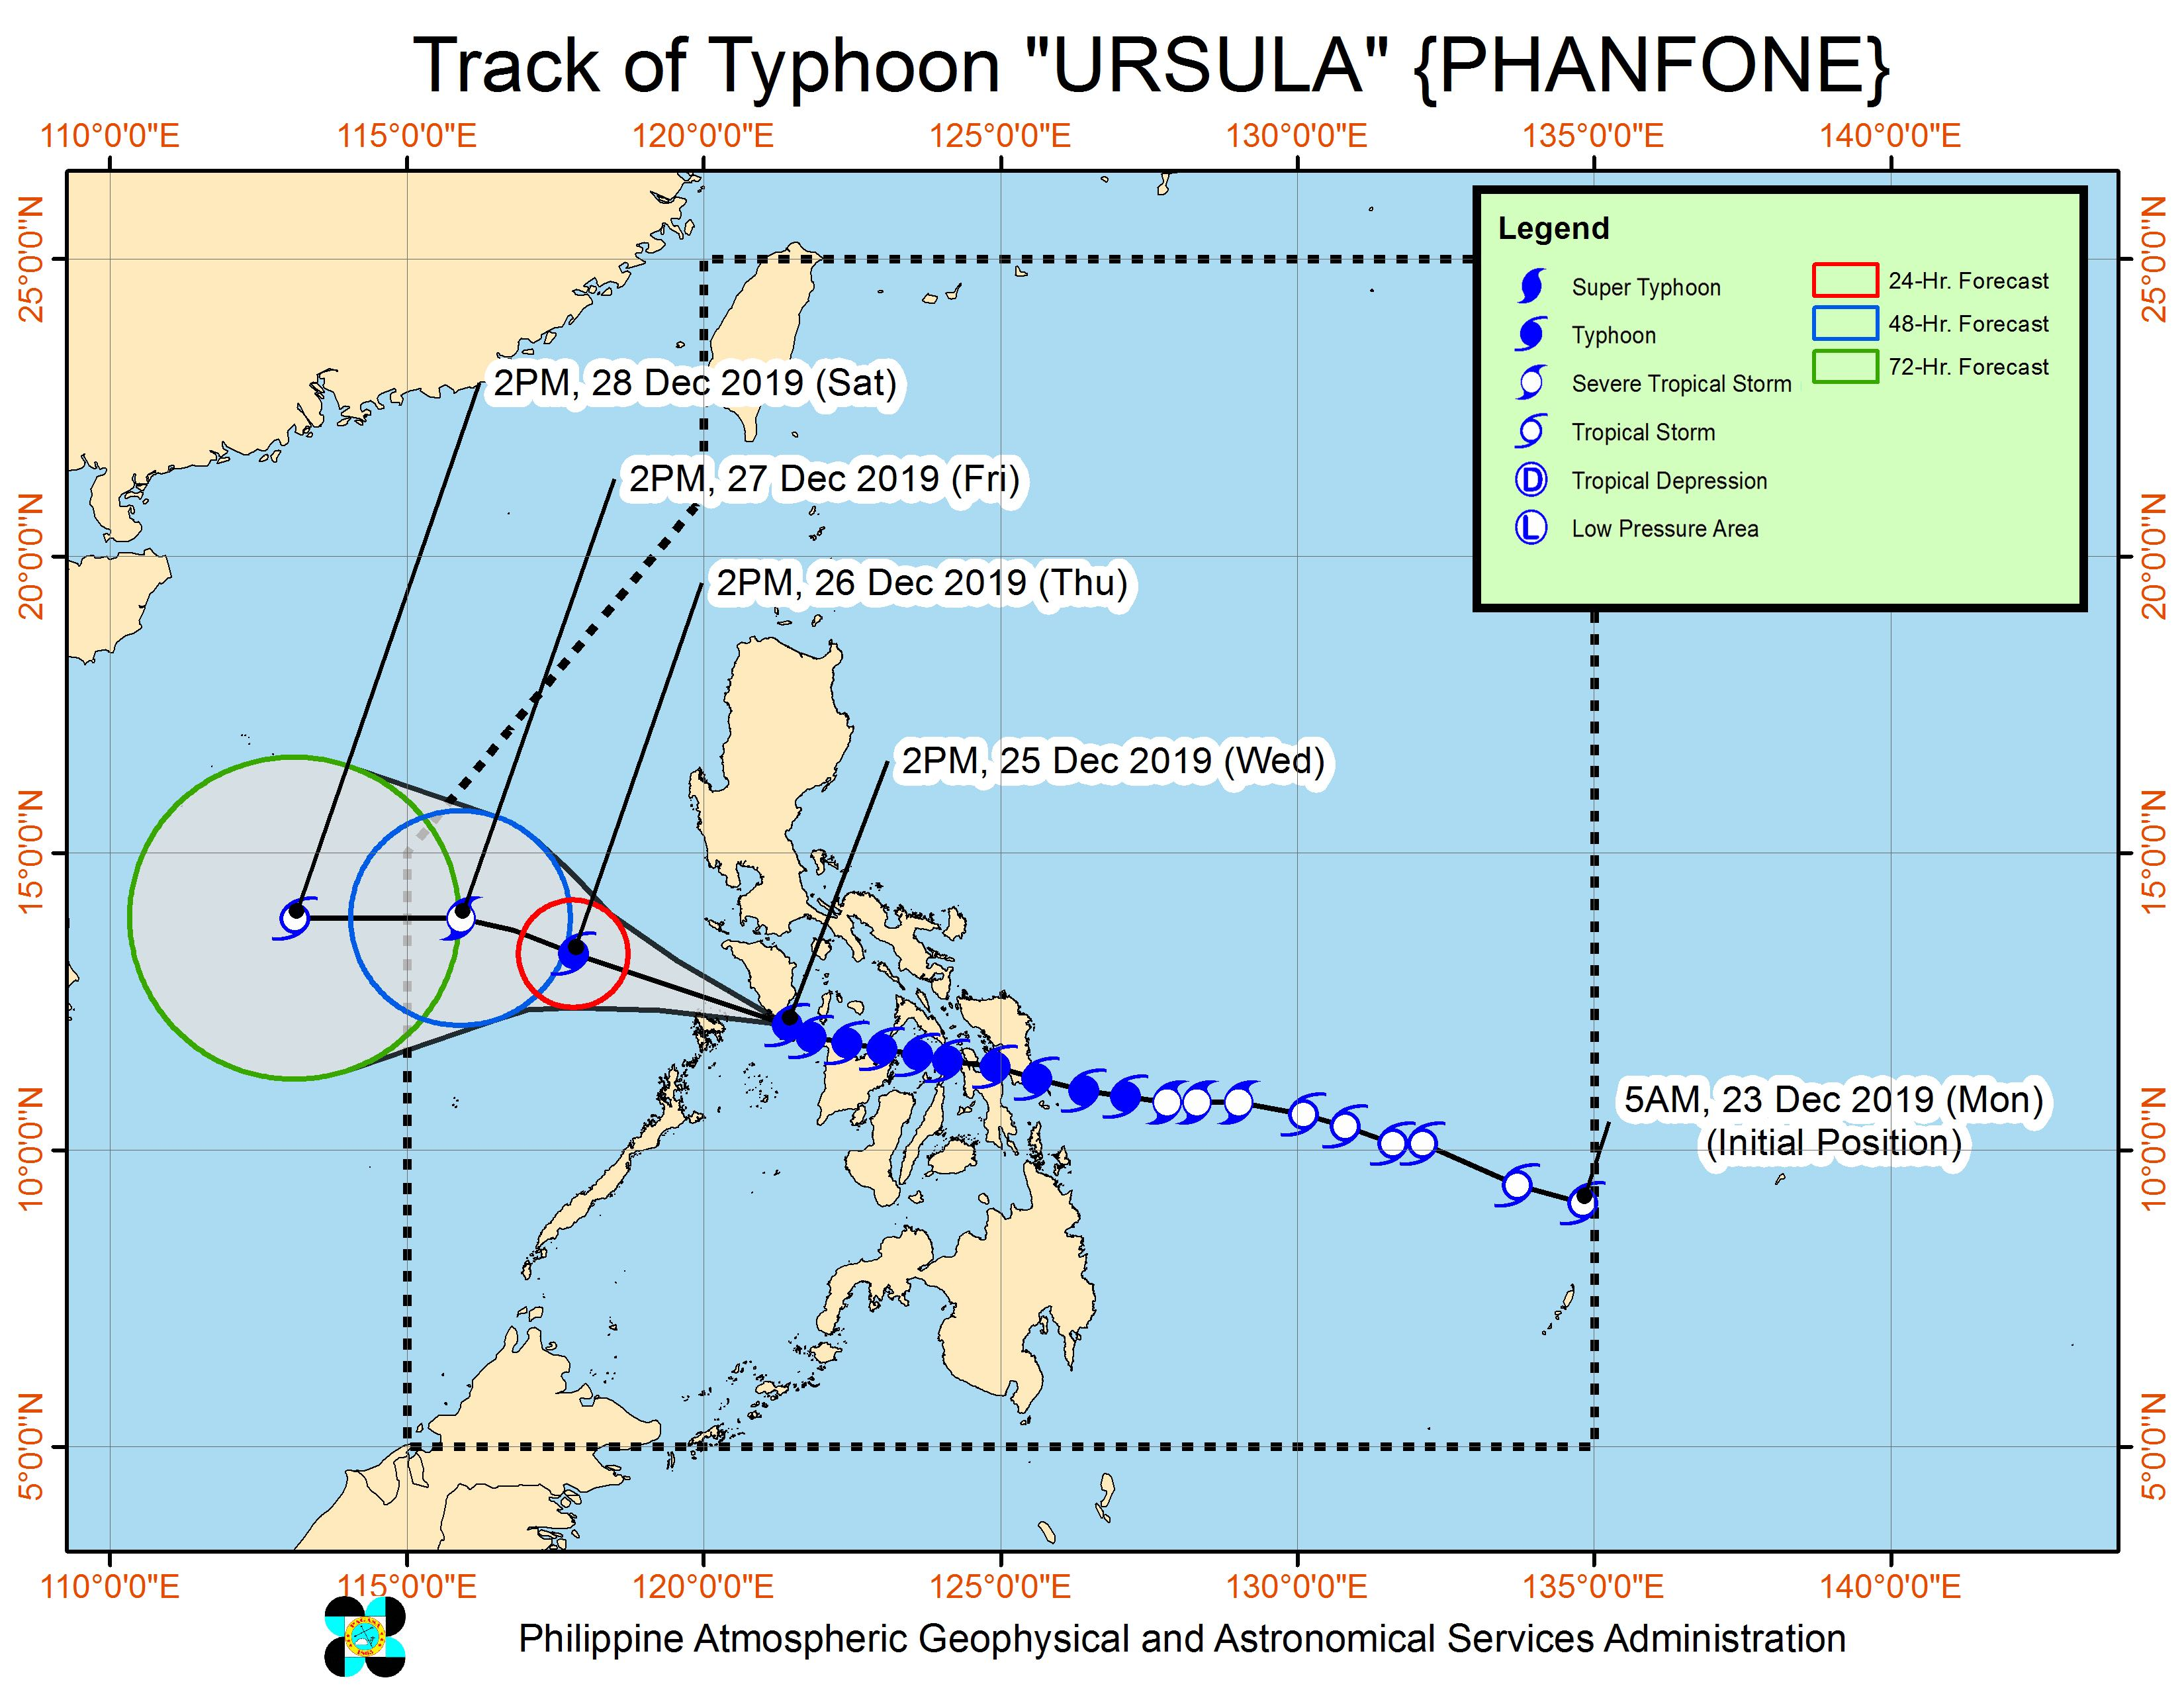 Forecast track of Typhoon Ursula (Phanfone) as of December 25, 2019, 5 pm. Image from PAGASA